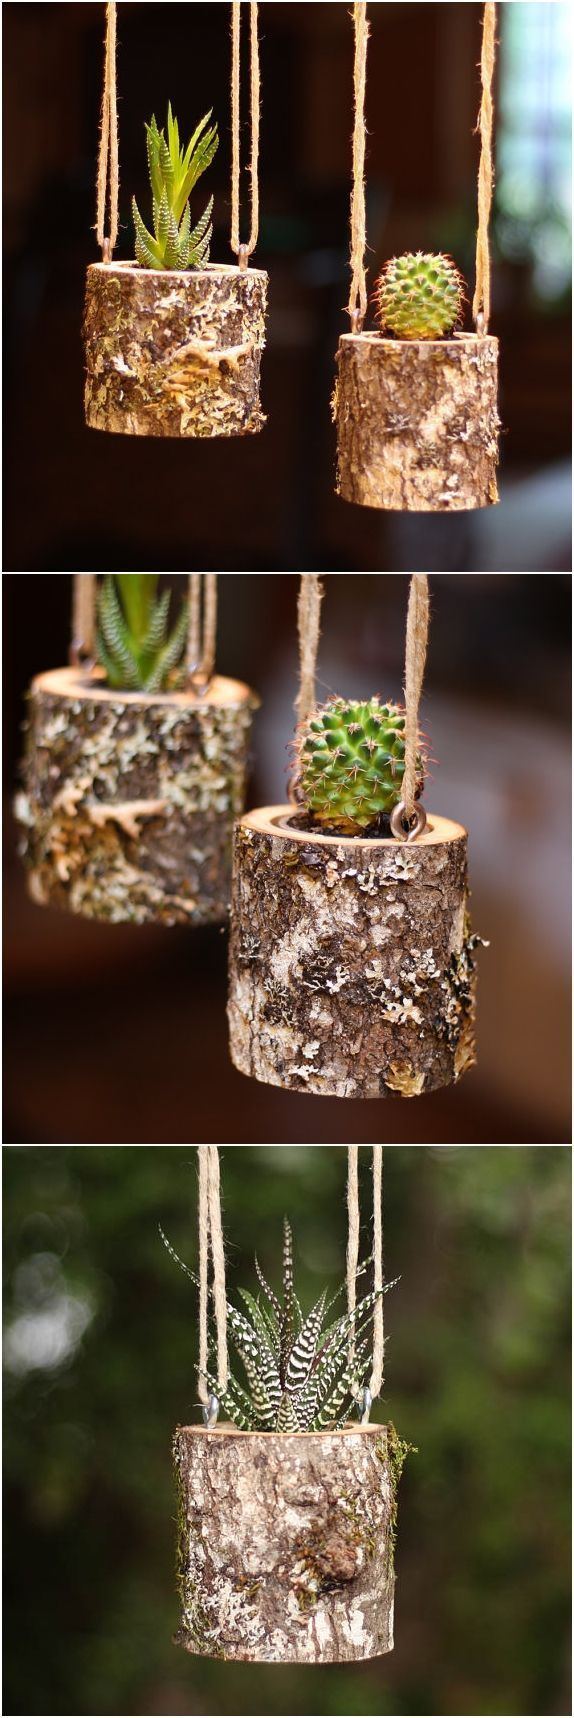 Photo of House Warming Gift Planter Hanging Planter Indoor Rustic Hanging Succulent Plant …